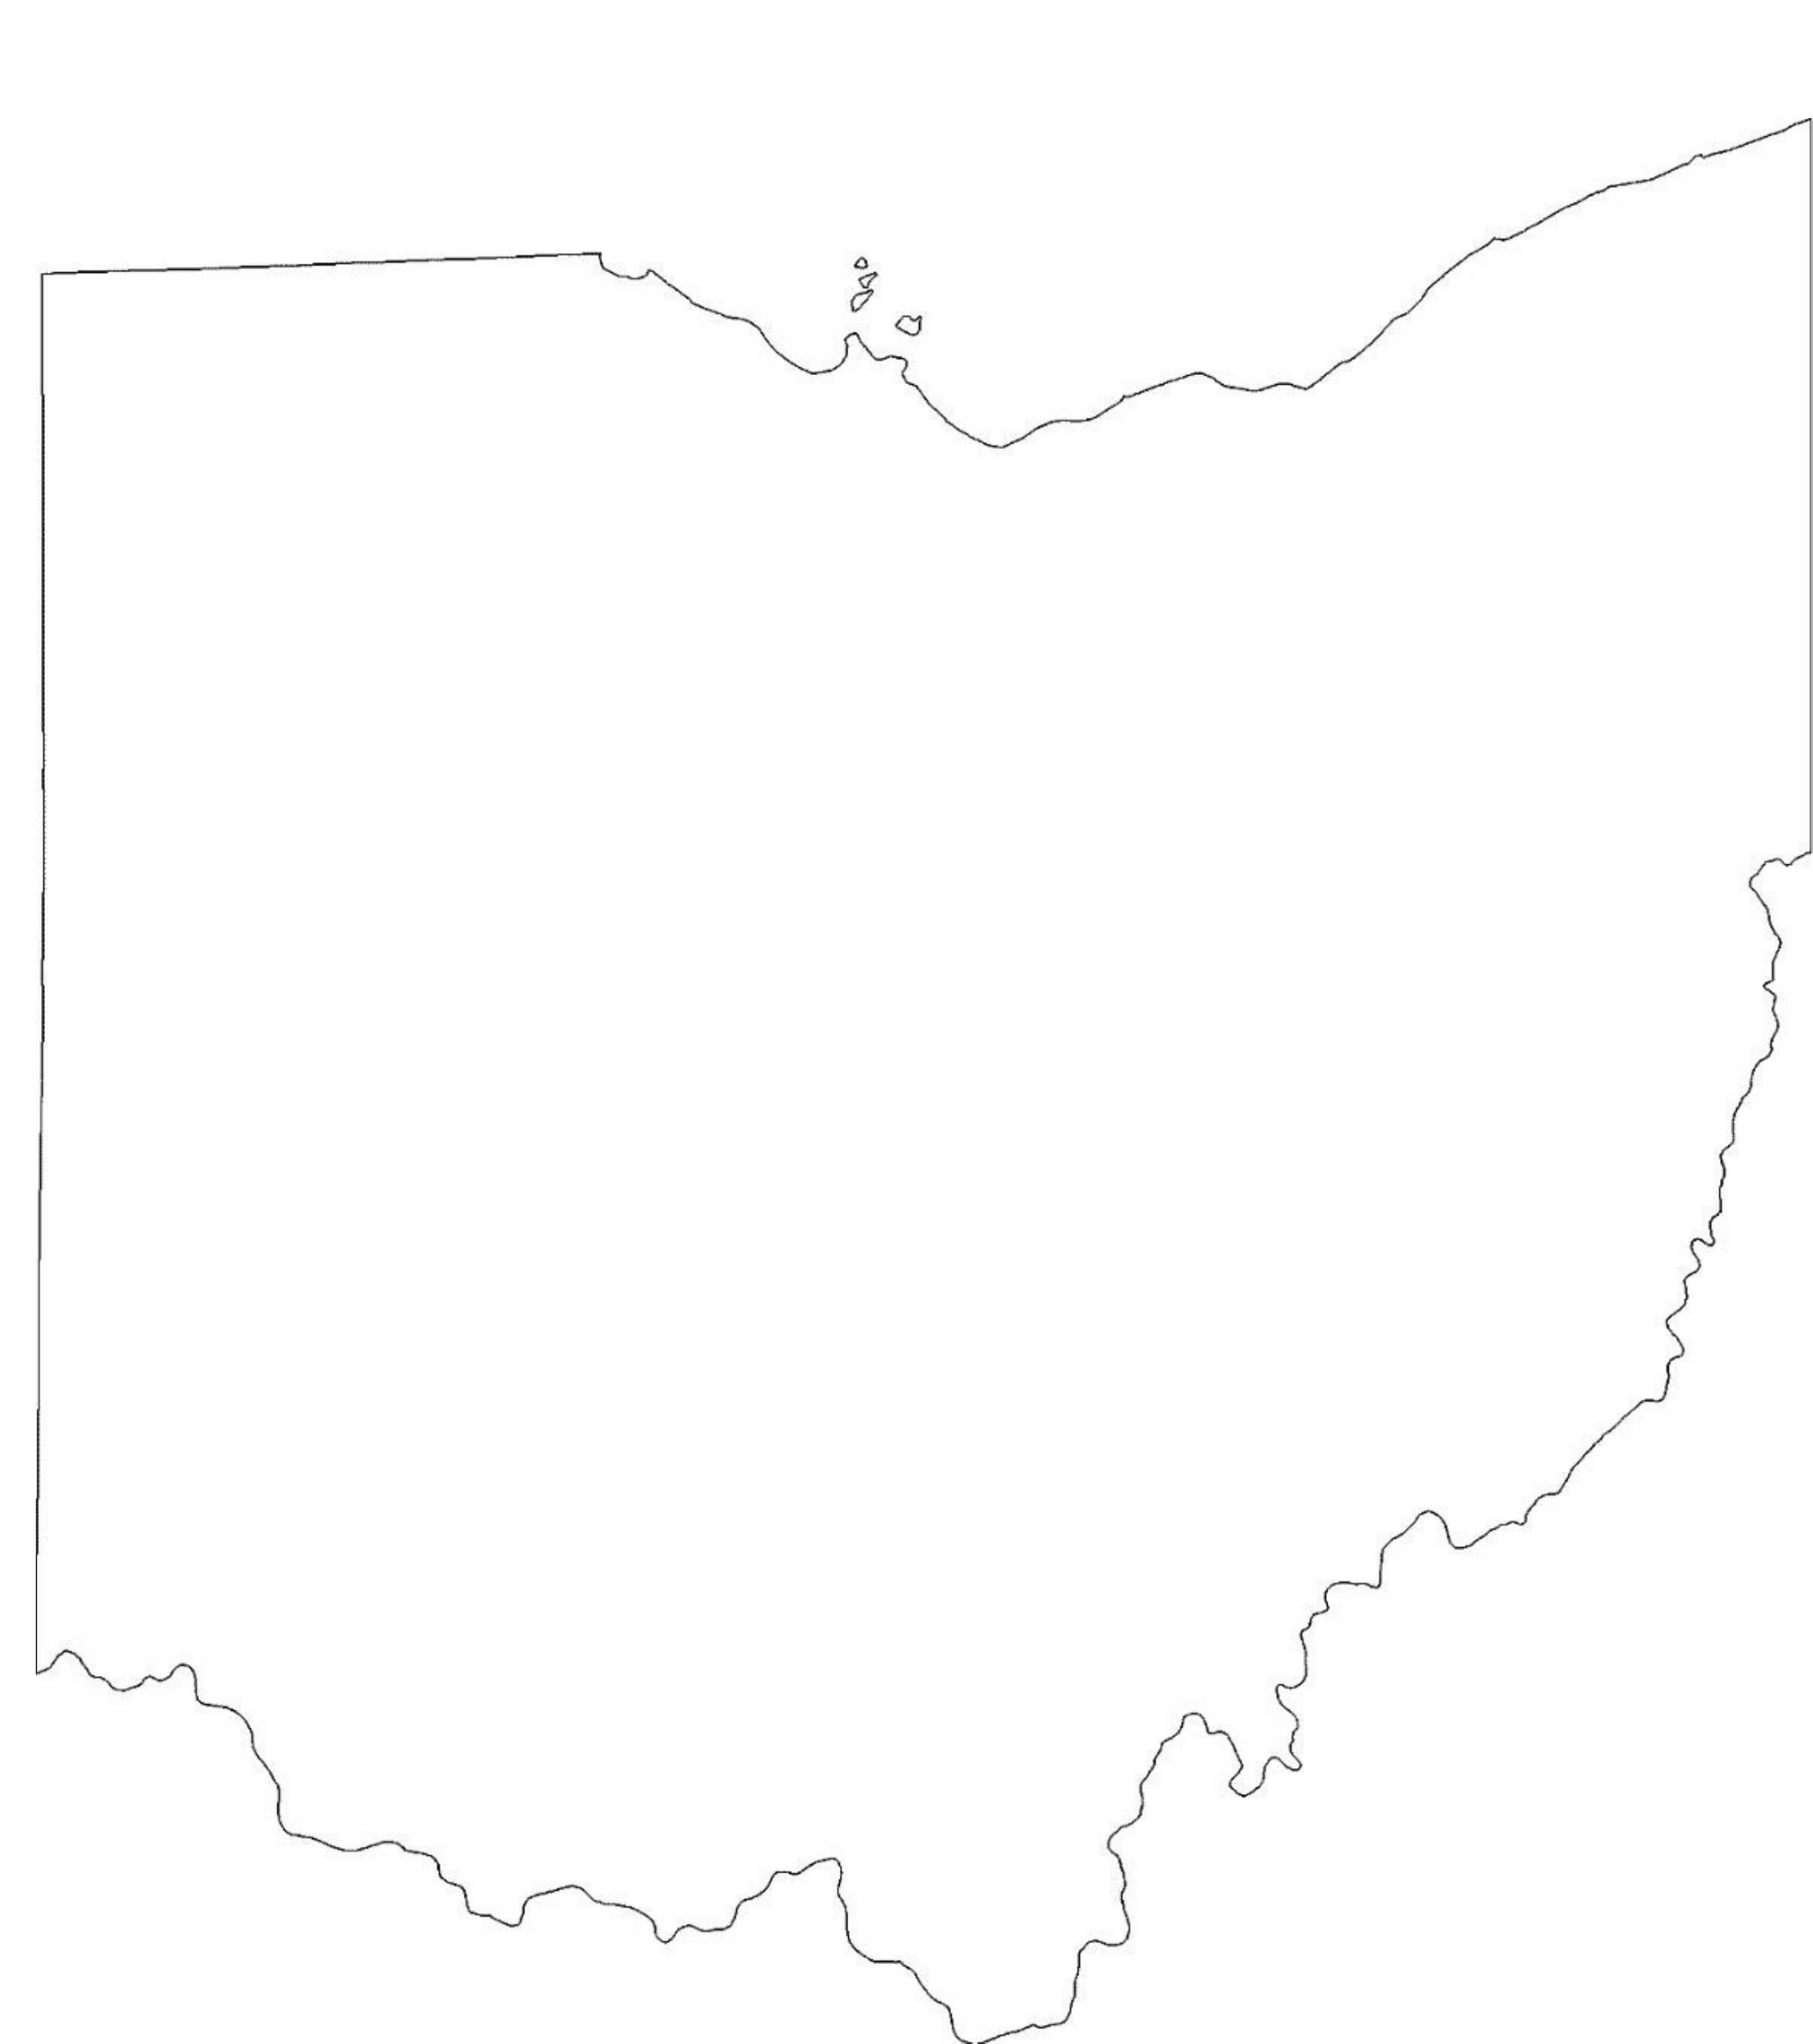 united state blank map with Free Ohio State Outline Map on Usa Canada Mexico Map together with Us Map With States Numbered further Louisiana Main Cities Map in addition Free Indiana State Outline Map besides Free Ohio State Outline Map.